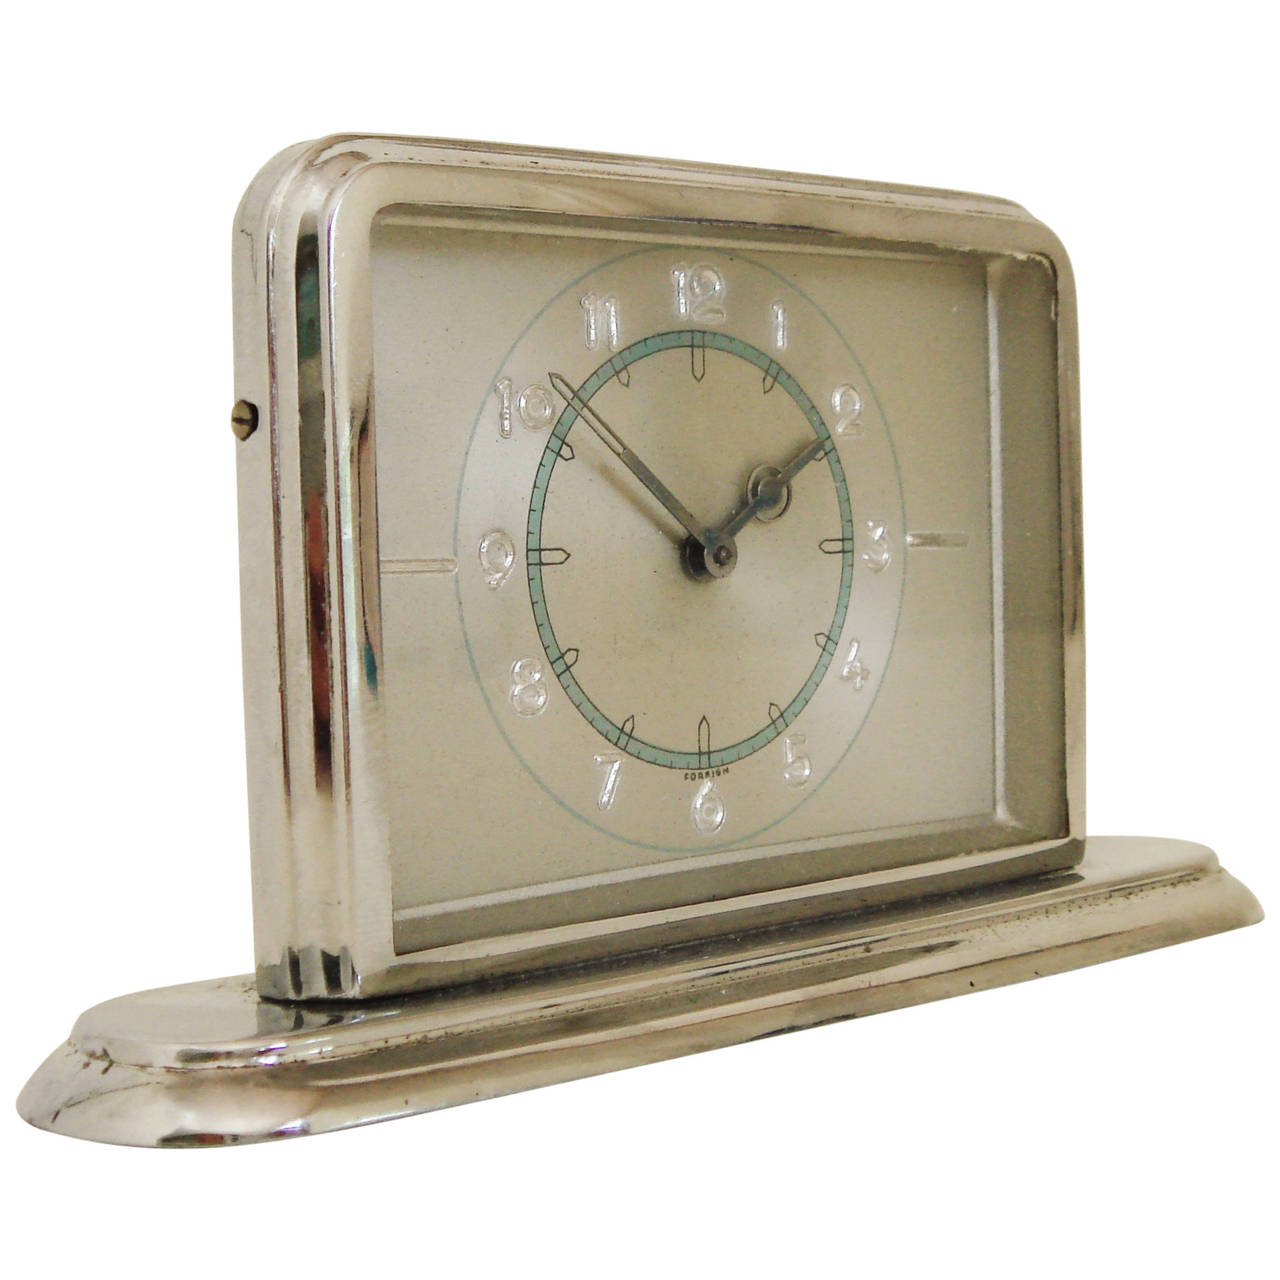 German Art Deco Small Chrome Desk Clock with Blue and